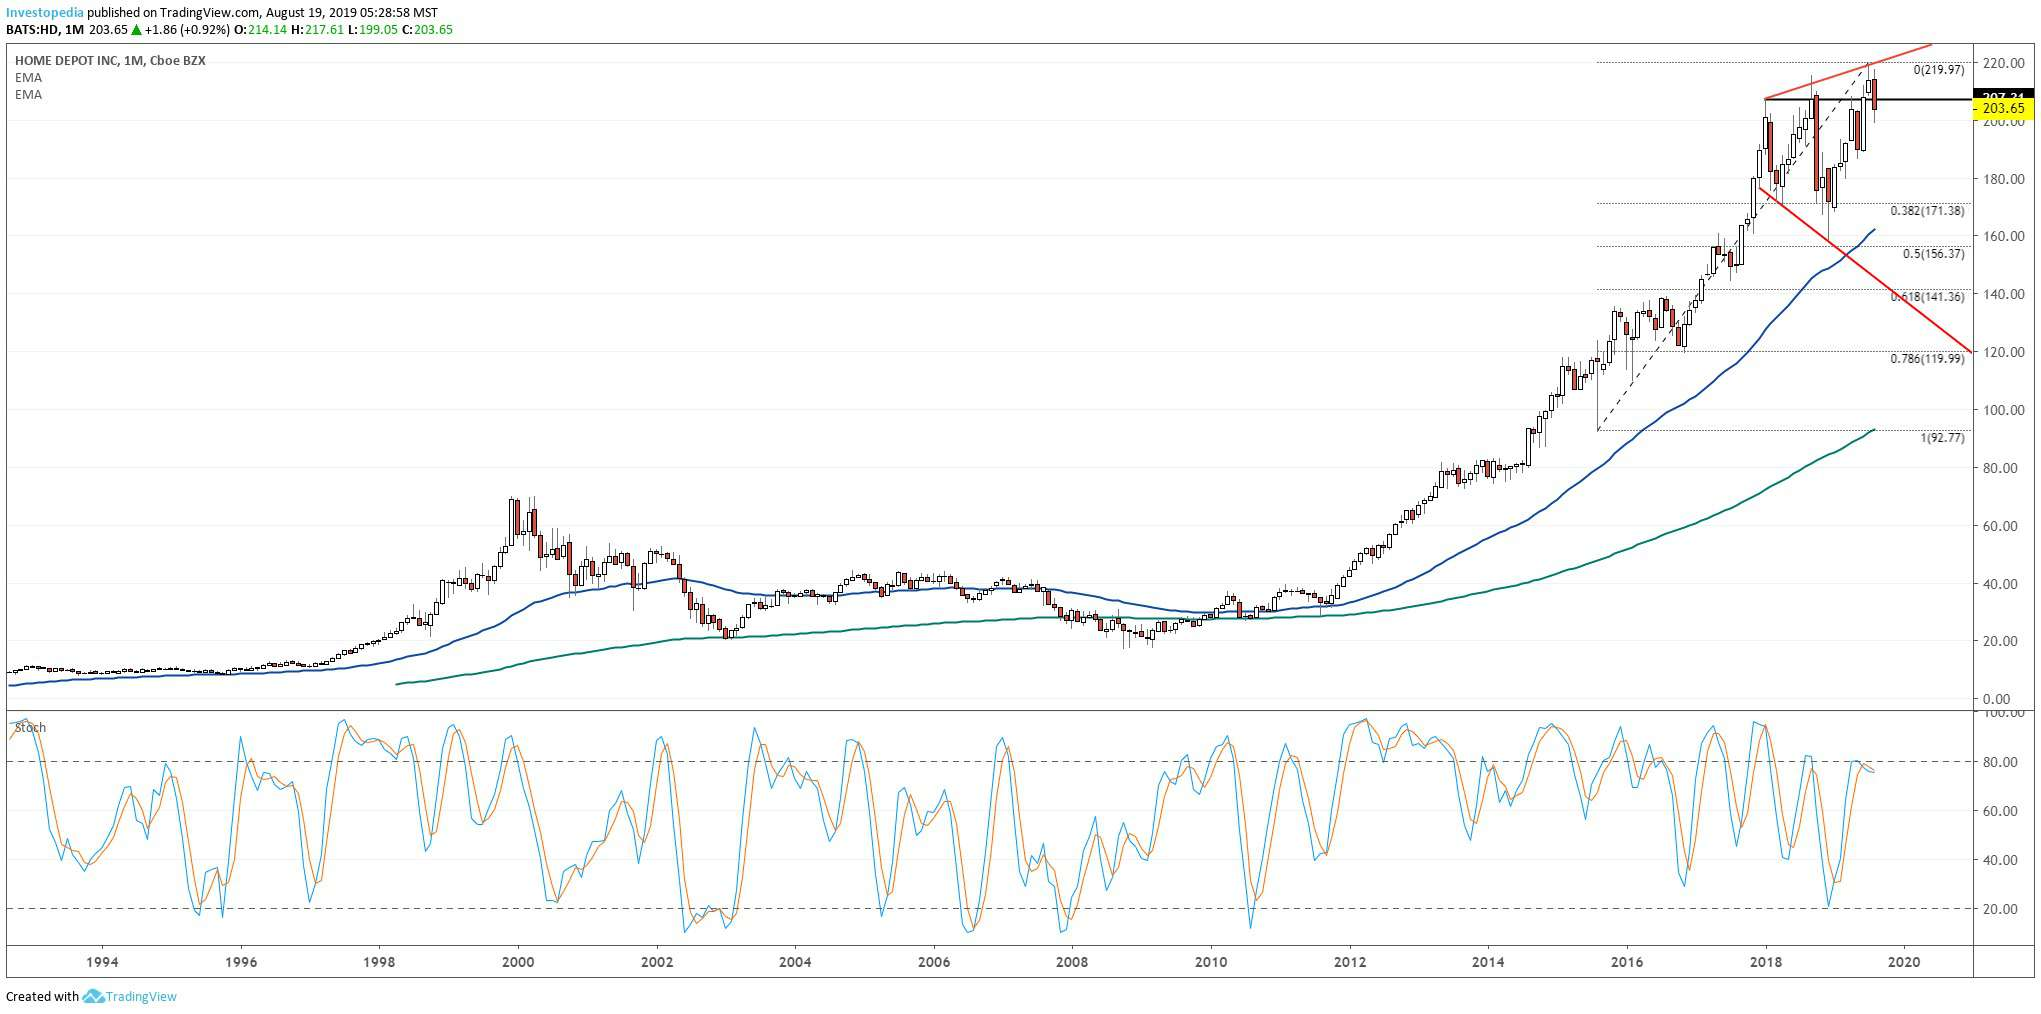 Long-term chart showing the share price performance of The Home Depot, Inc. (HD)